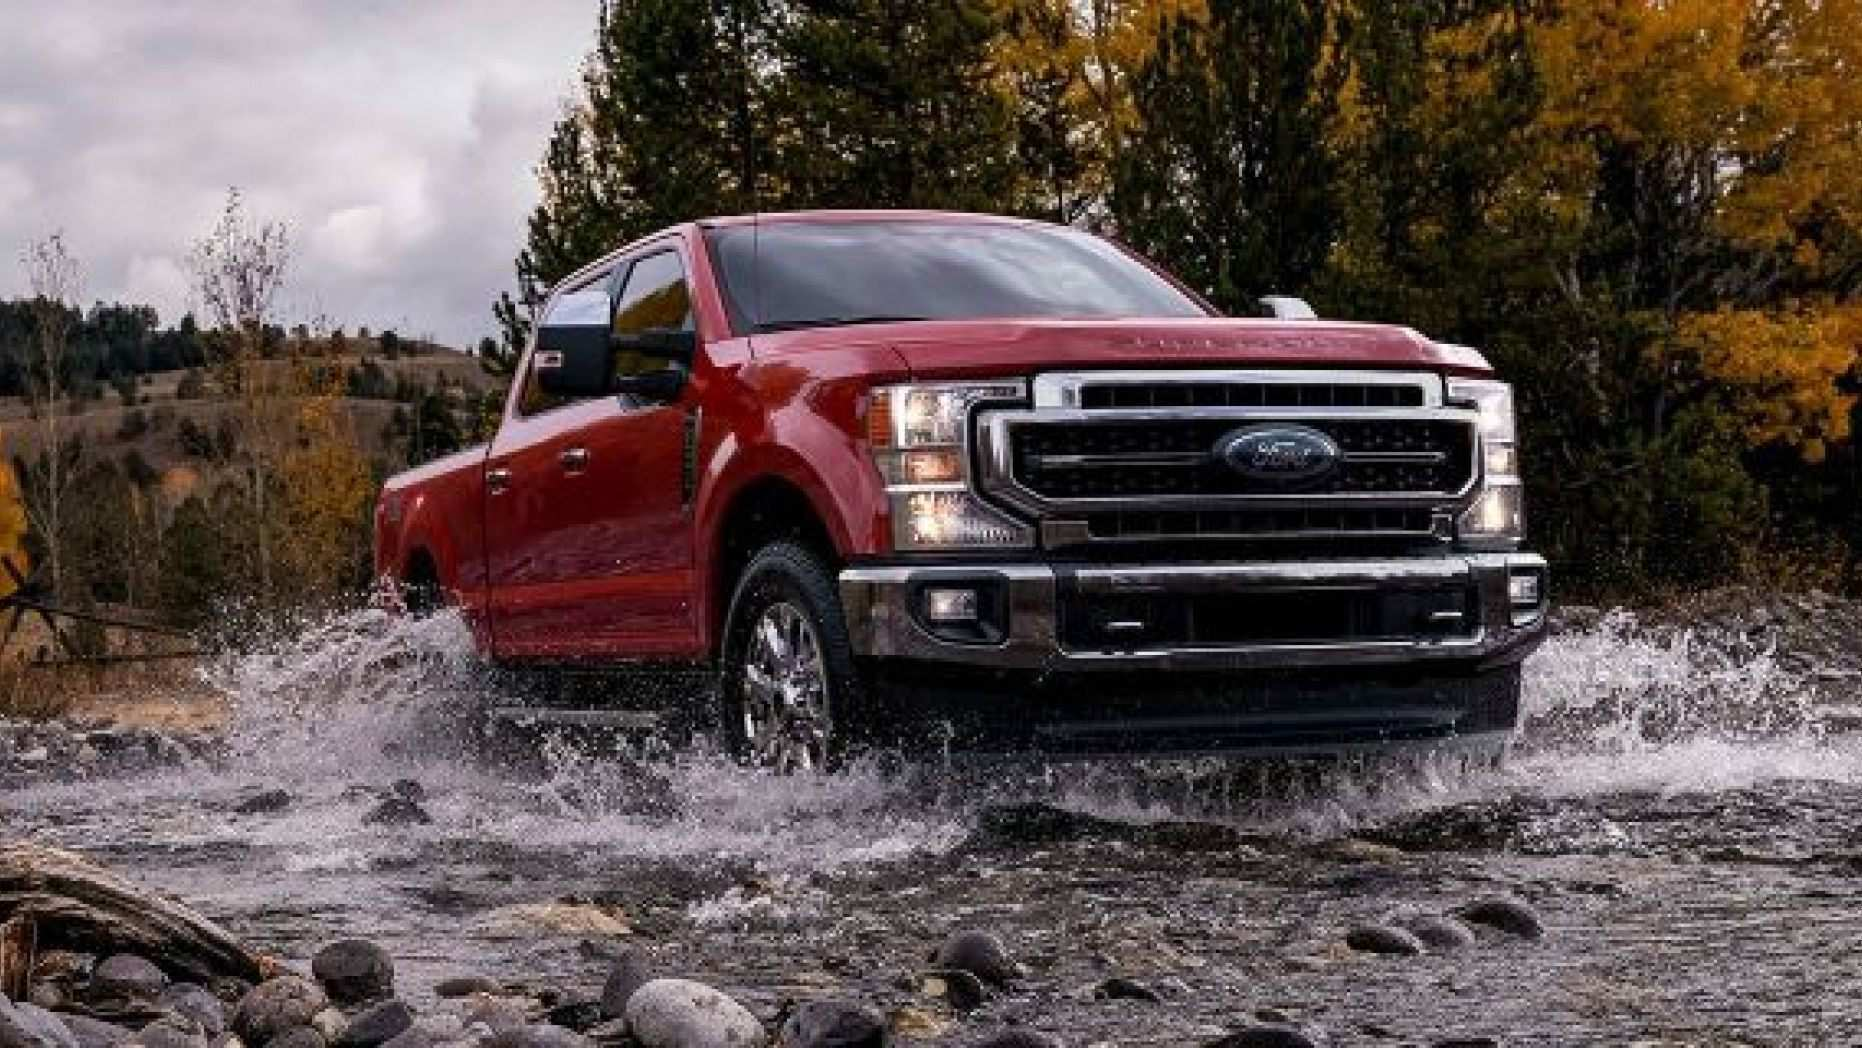 43 New 2020 Ford Diesel Engine with 2020 Ford Diesel